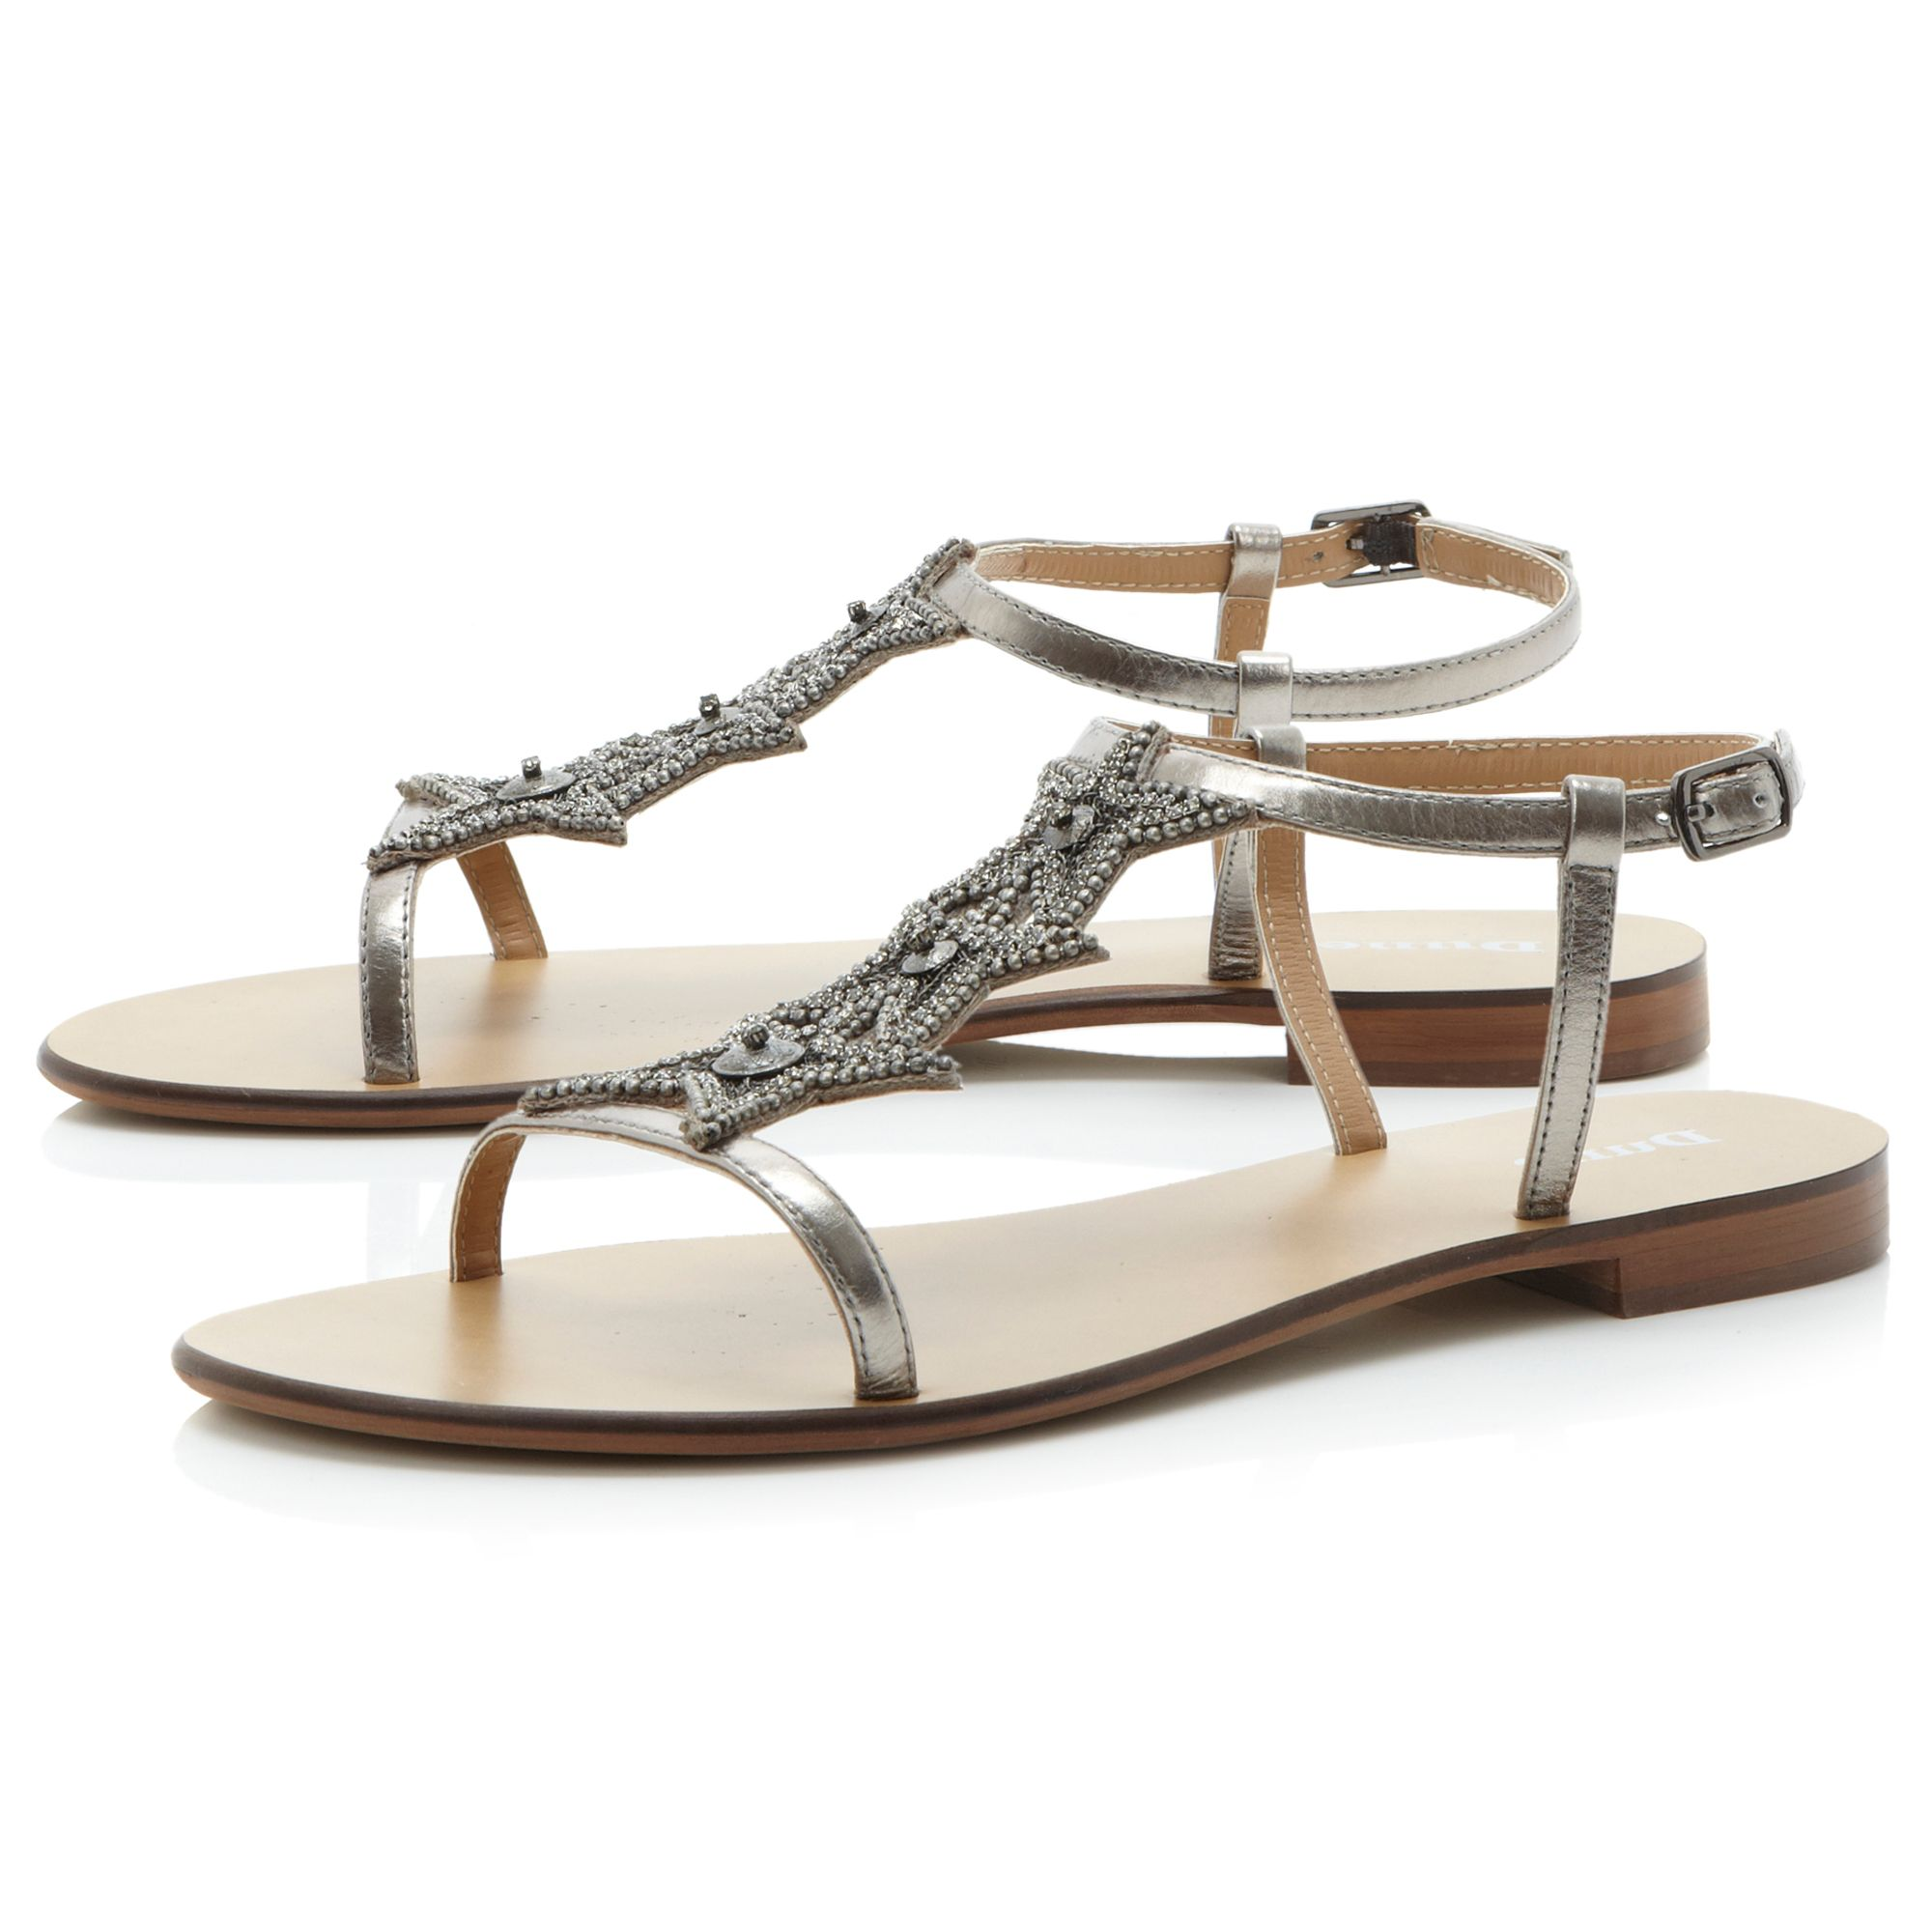 Karry star diamante flat sandals